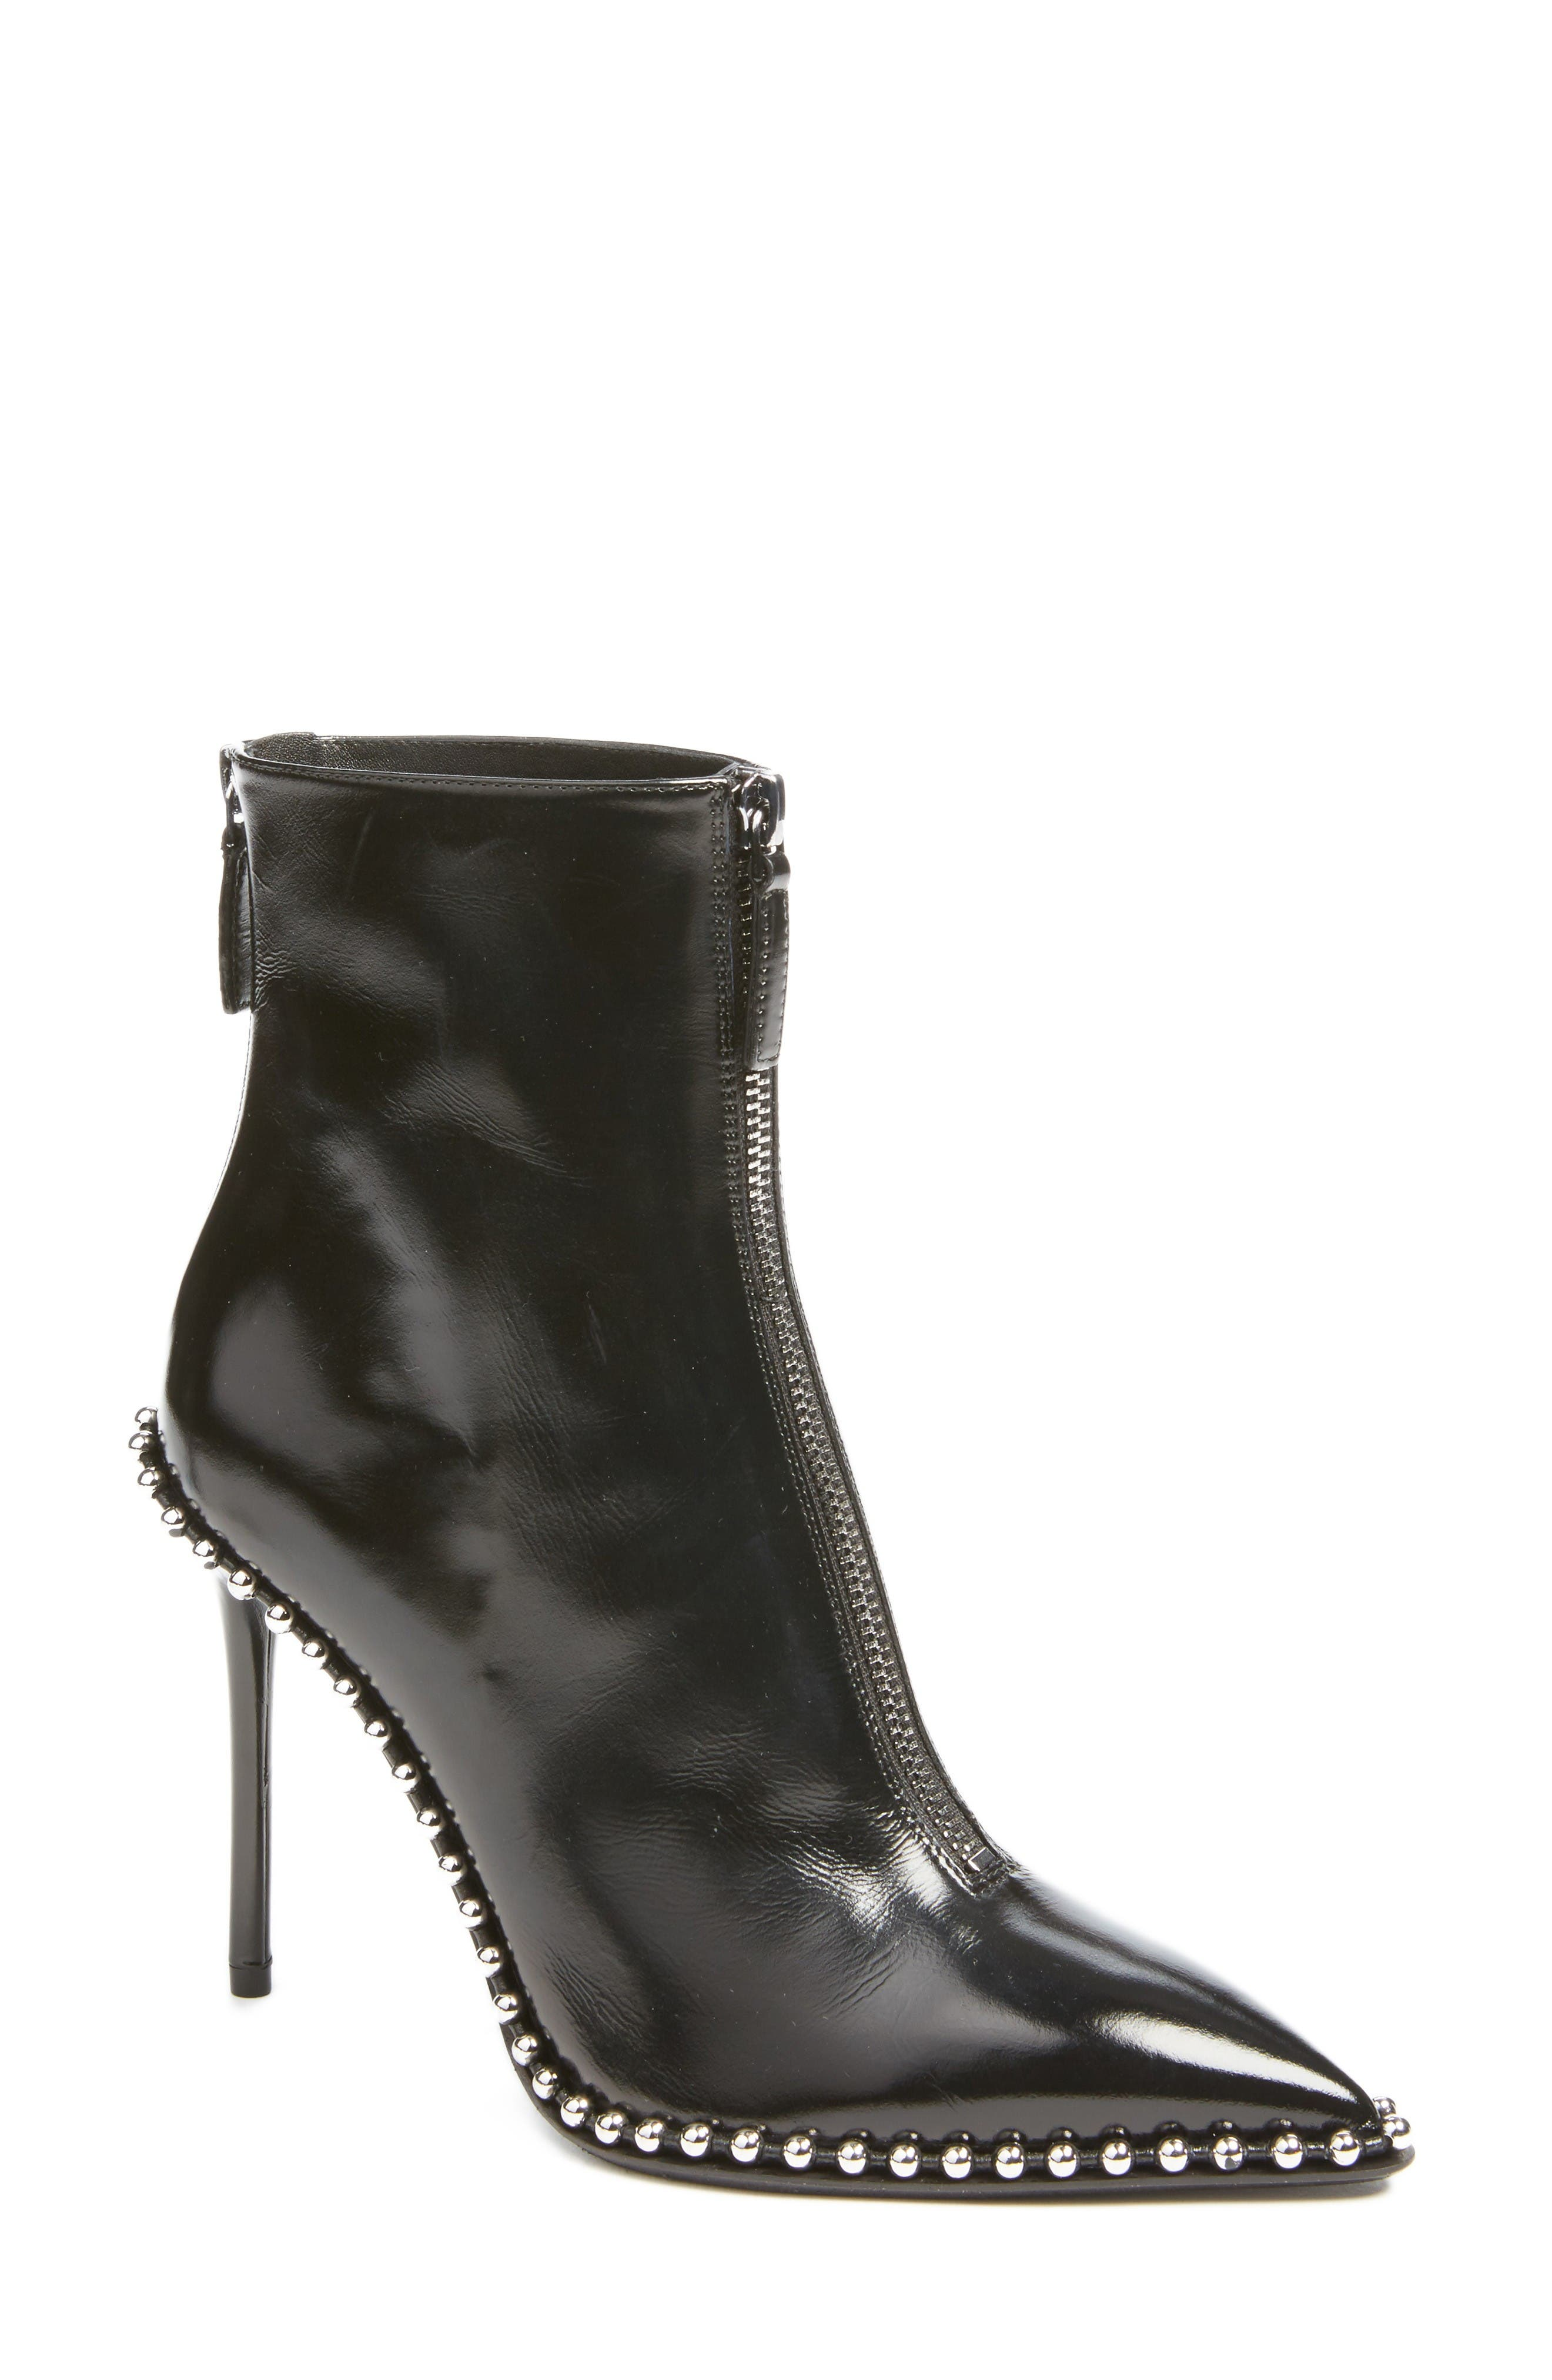 Alternate Image 1 Selected - Alexander Wang Eri Zipper Bootie (Women)